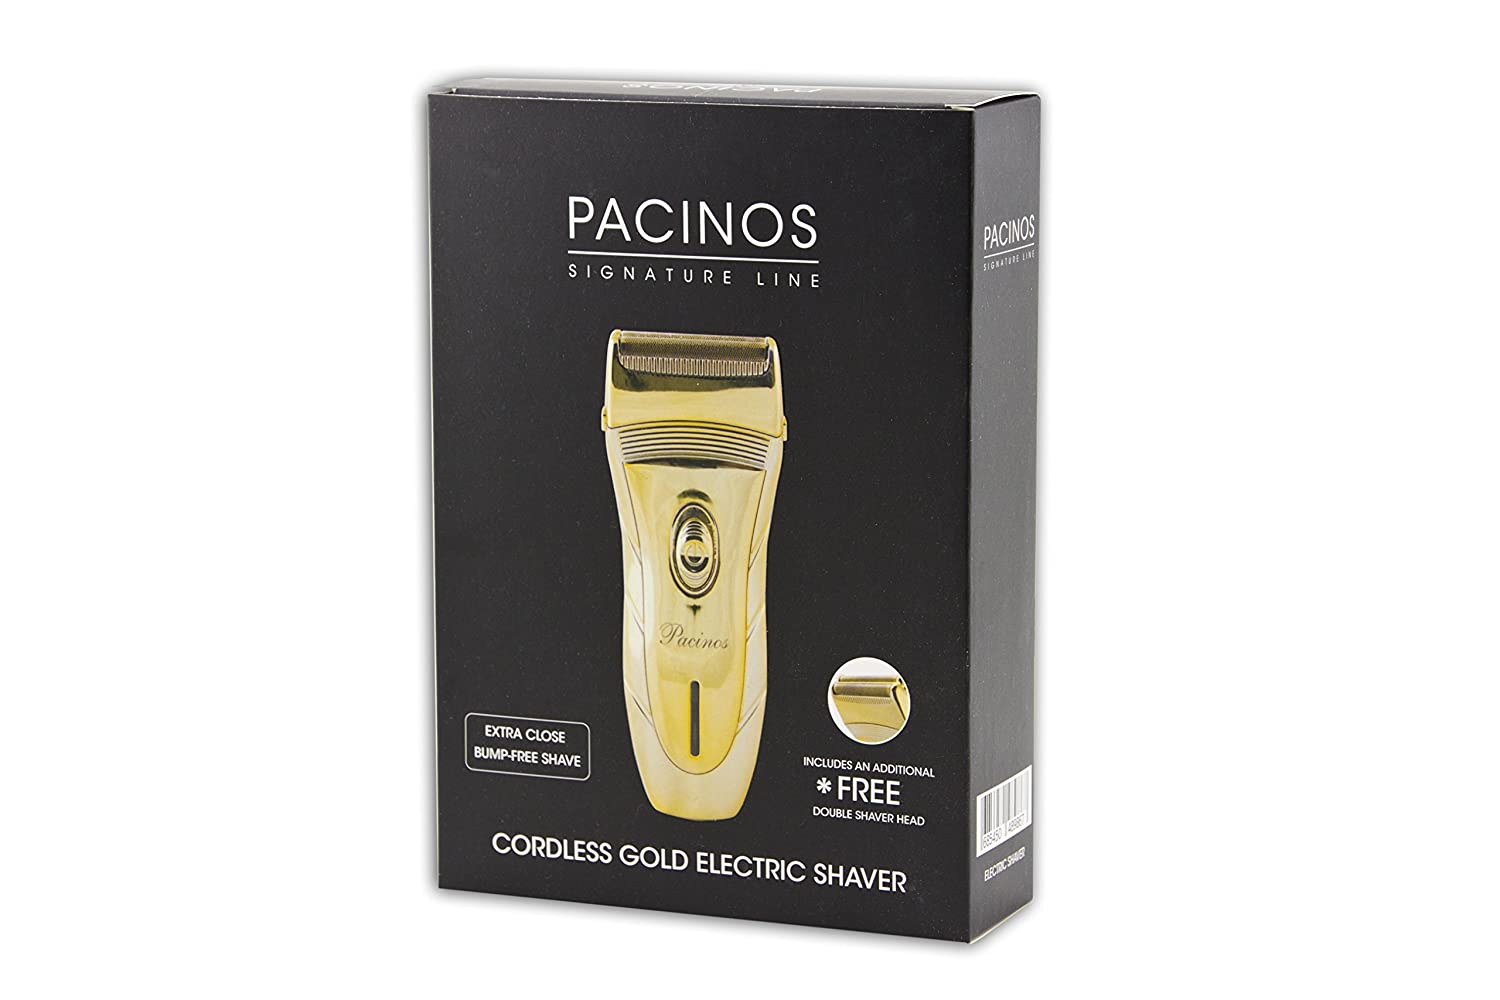 Pacinos Signature Line Cordless Gold Electric Shaver by Pacinos